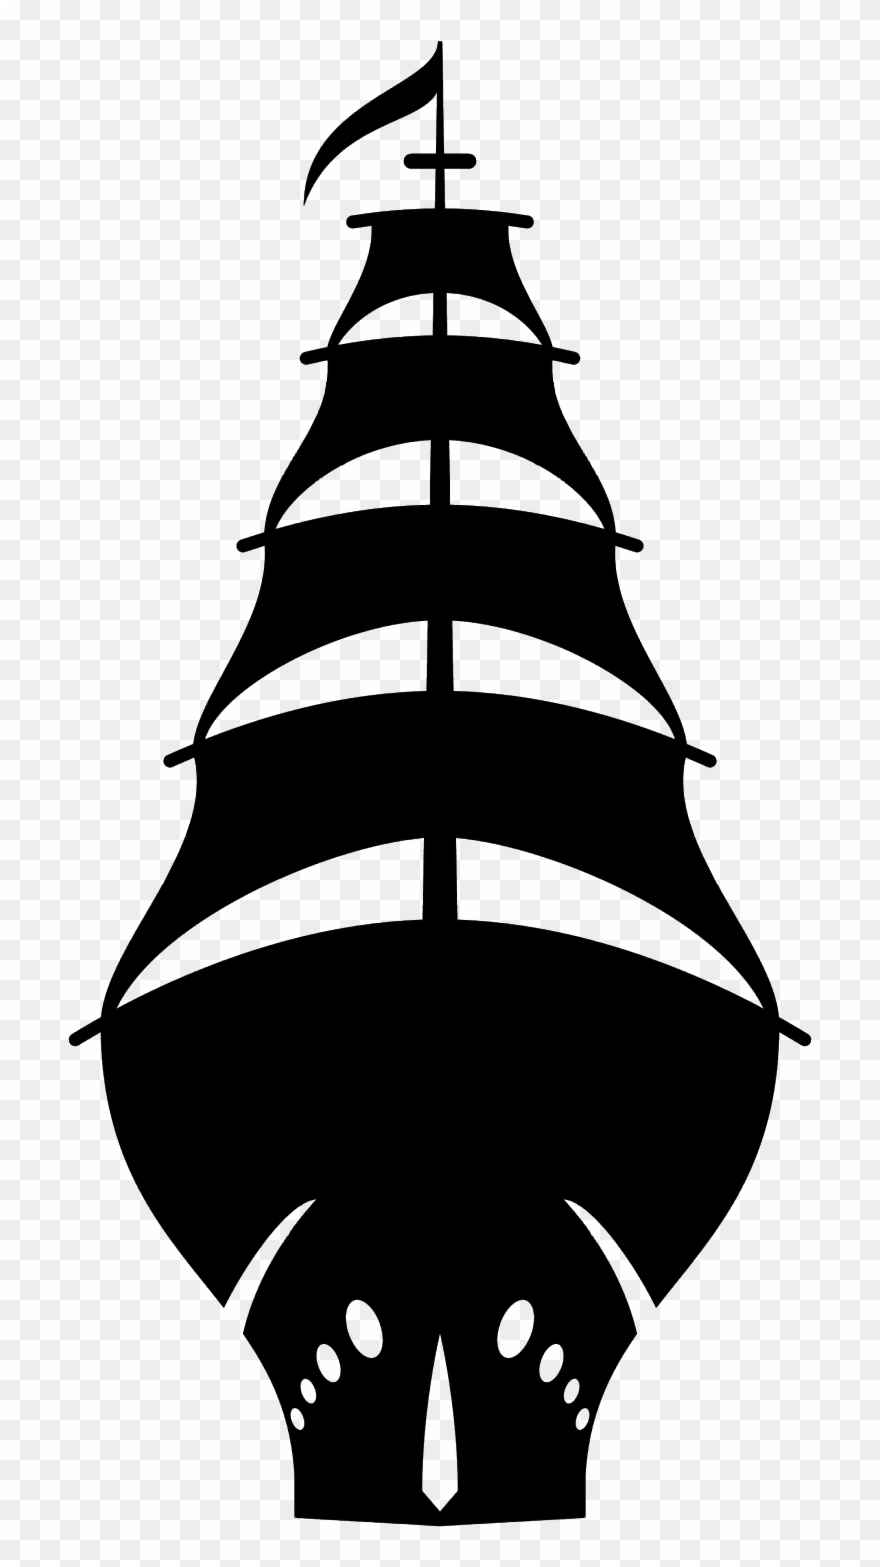 old ship silhouette caravel illustrations royalty free vector graphics clip silhouette old ship